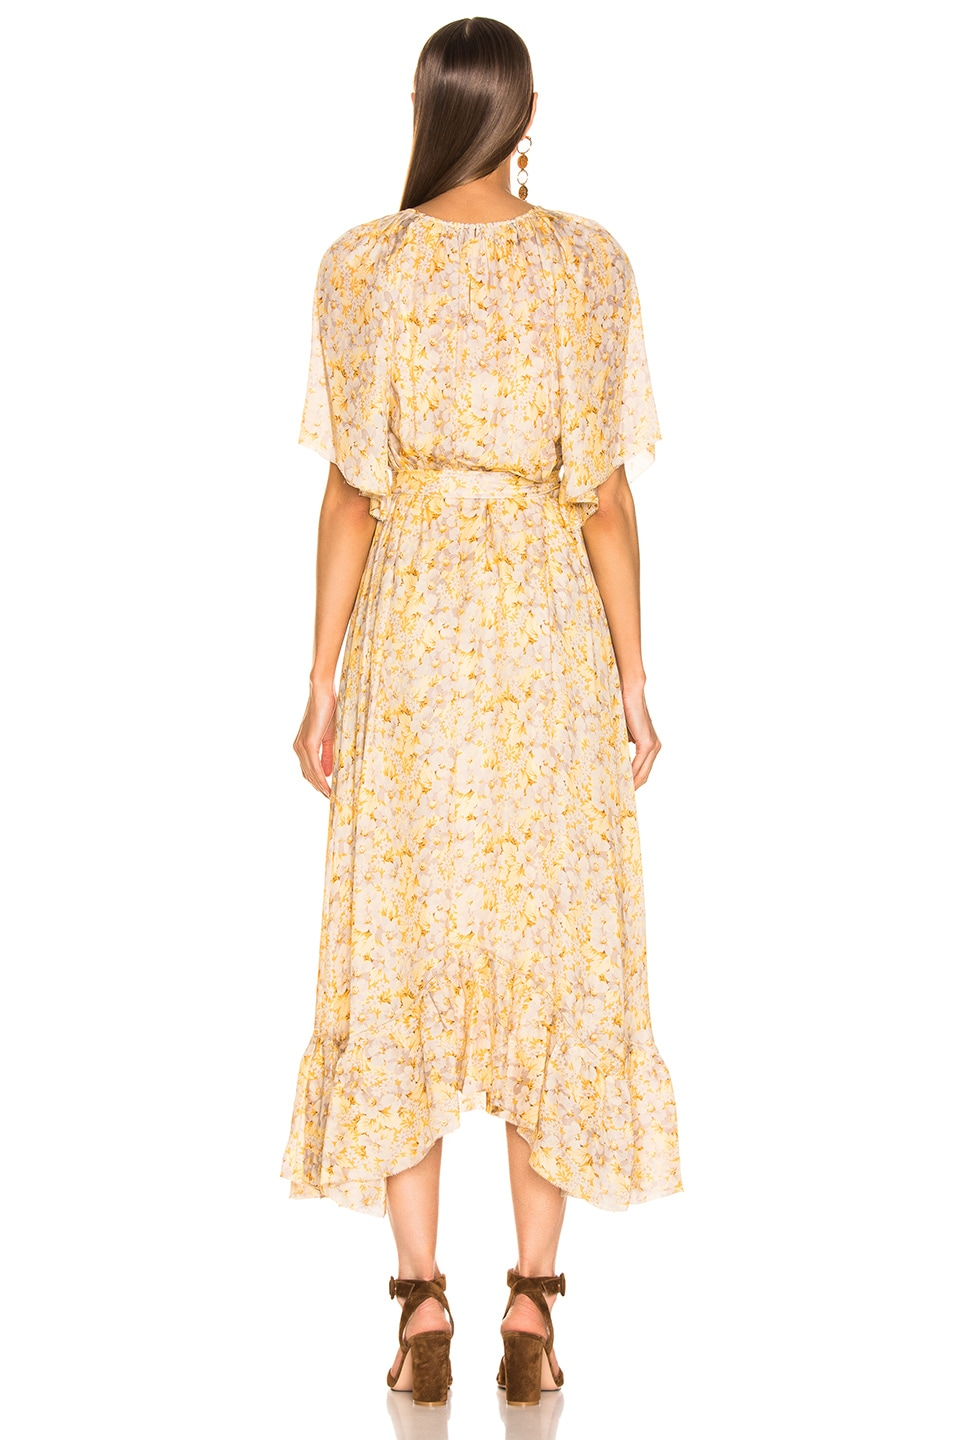 Image 3 of The Great Flutter Sleeve Dress With Belt in Buttercup Floral